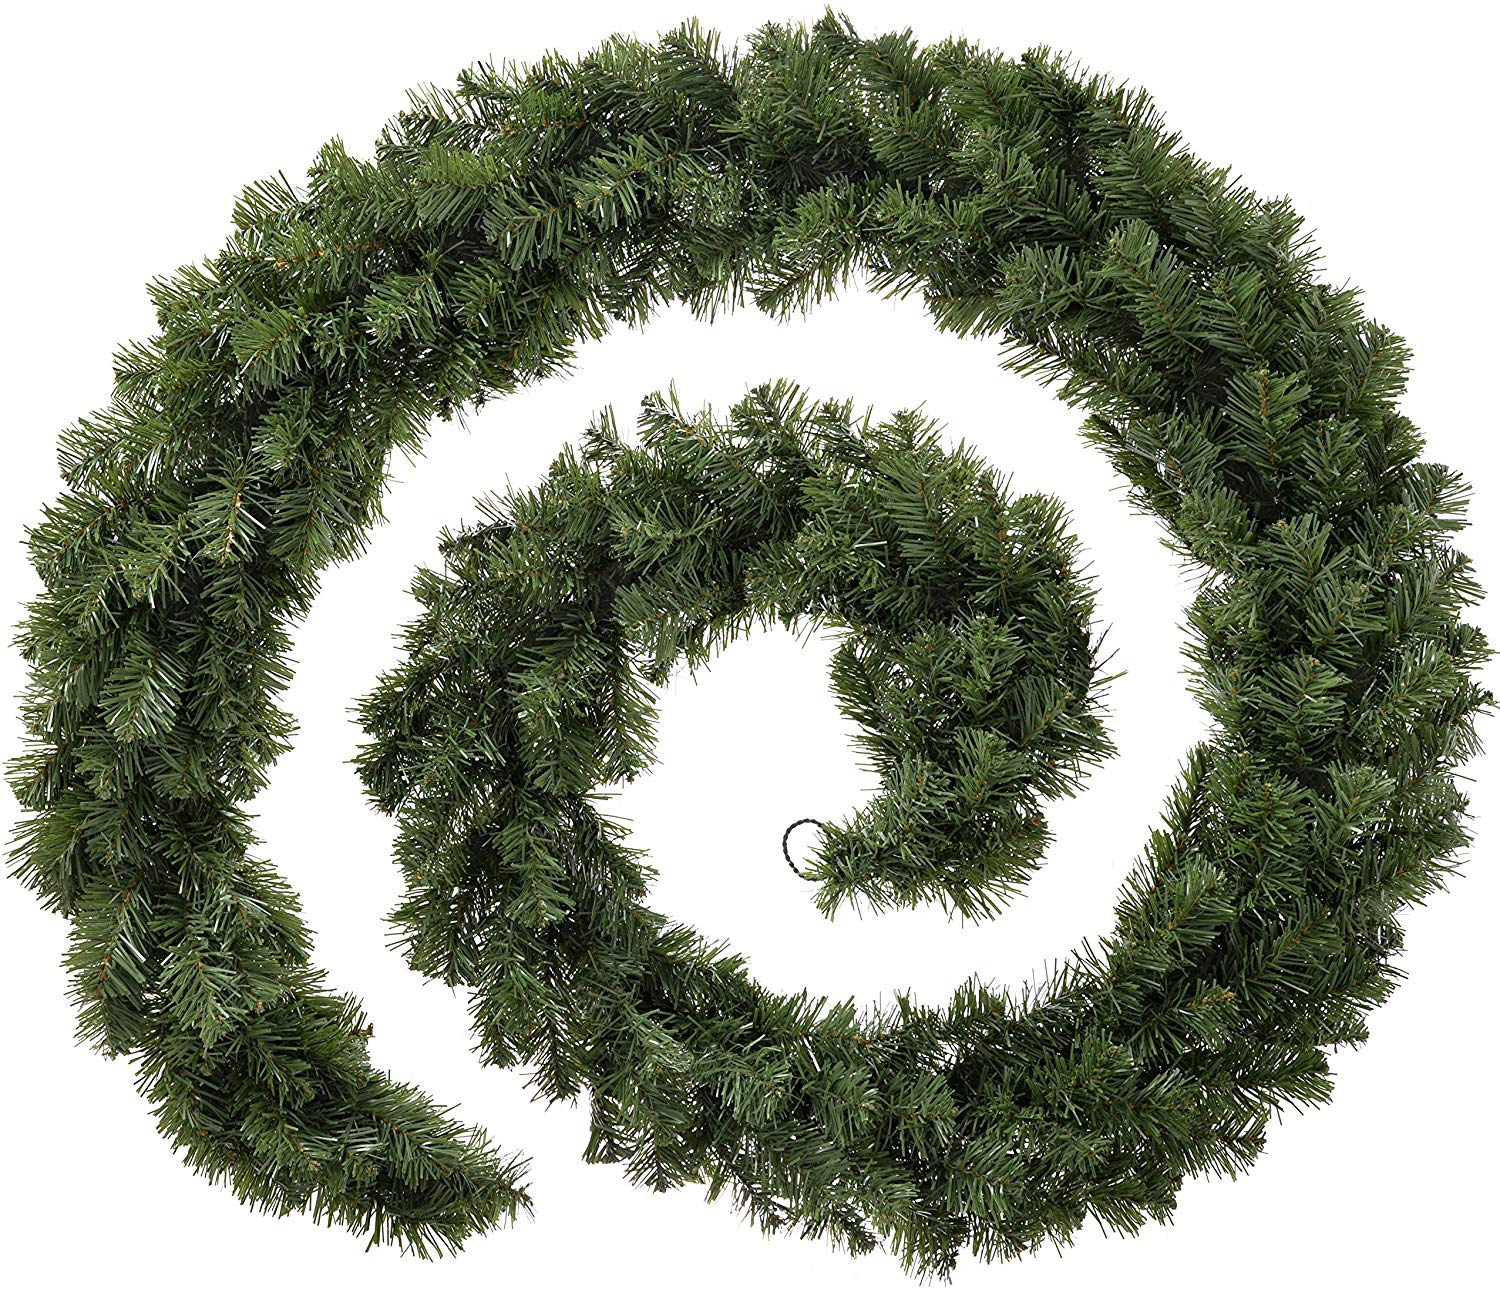 Extra Thick Pine Garland Christmas Decoration, Green, 9 feet